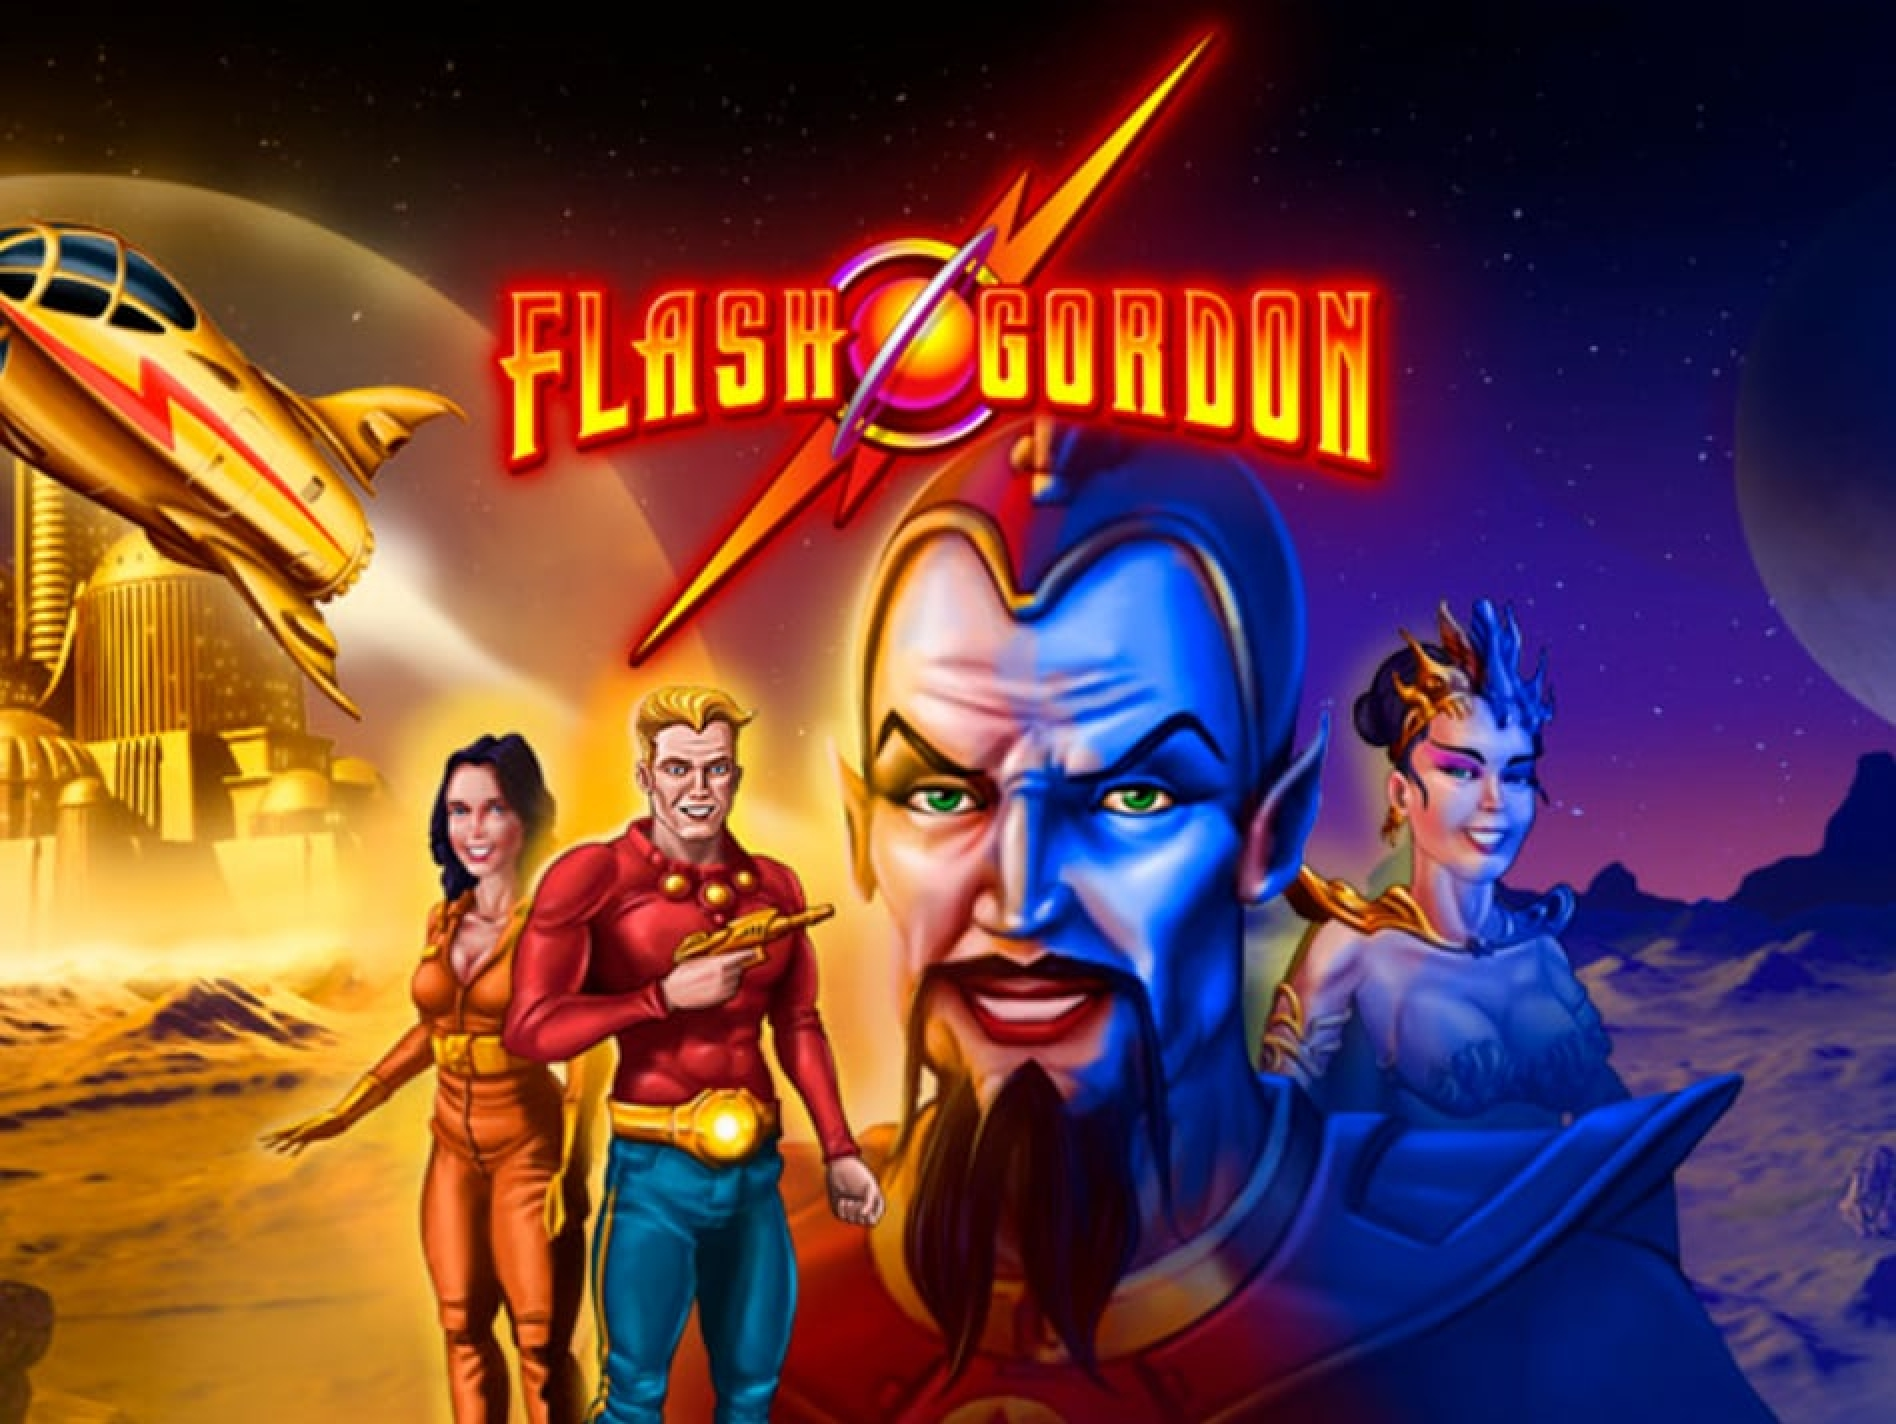 The Flash Gordon Online Slot Demo Game by MGA